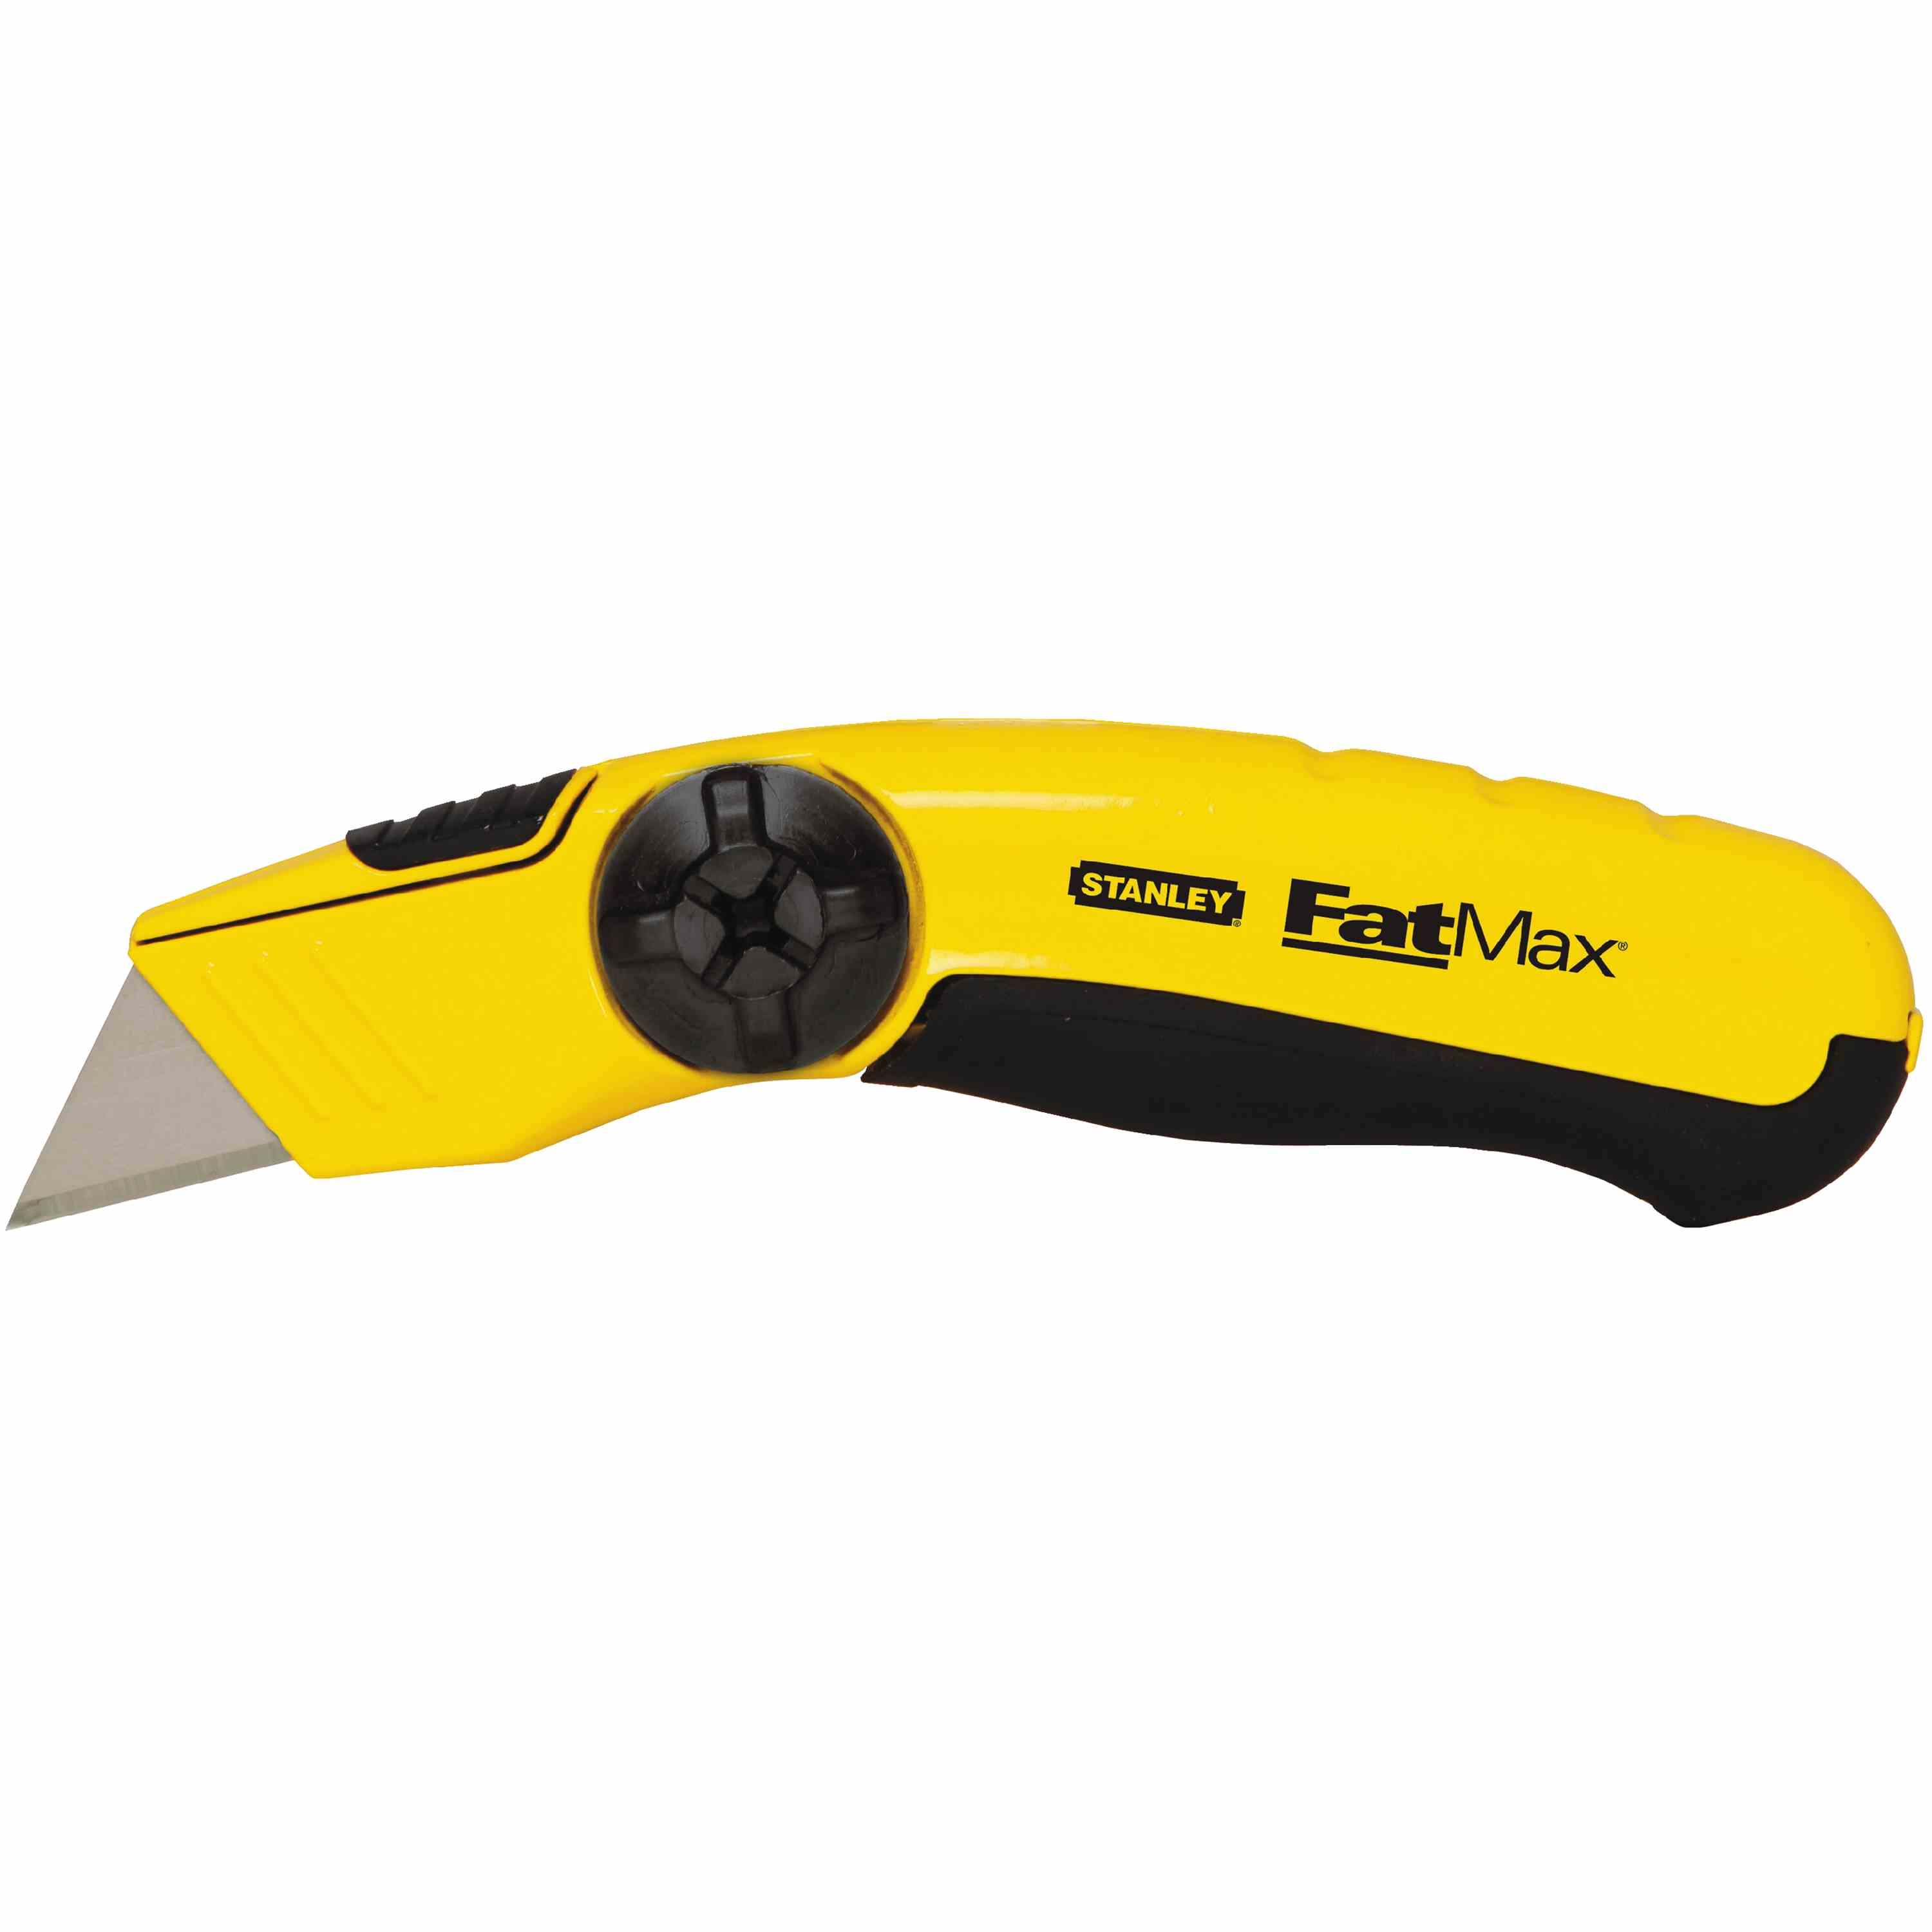 Stanley Tools - 614 in FATMAX Fixed Blade Utility Knife - 10-780